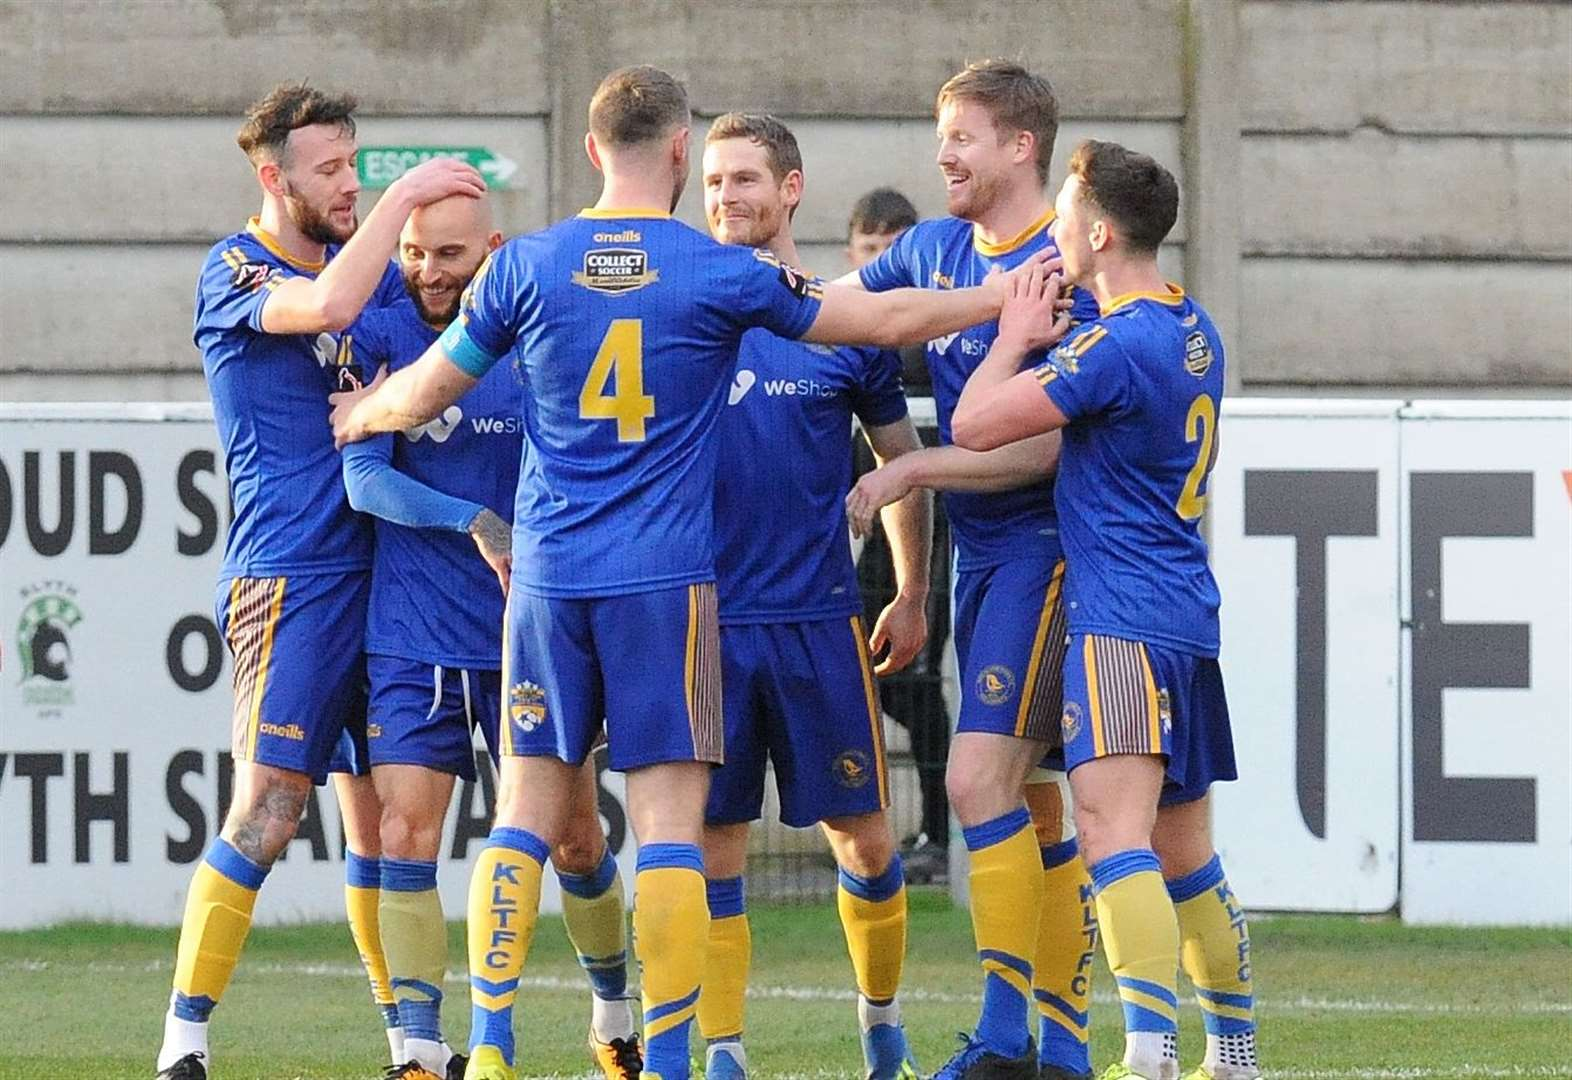 Matchday live: Chester v King's Lynn Town in the National League North